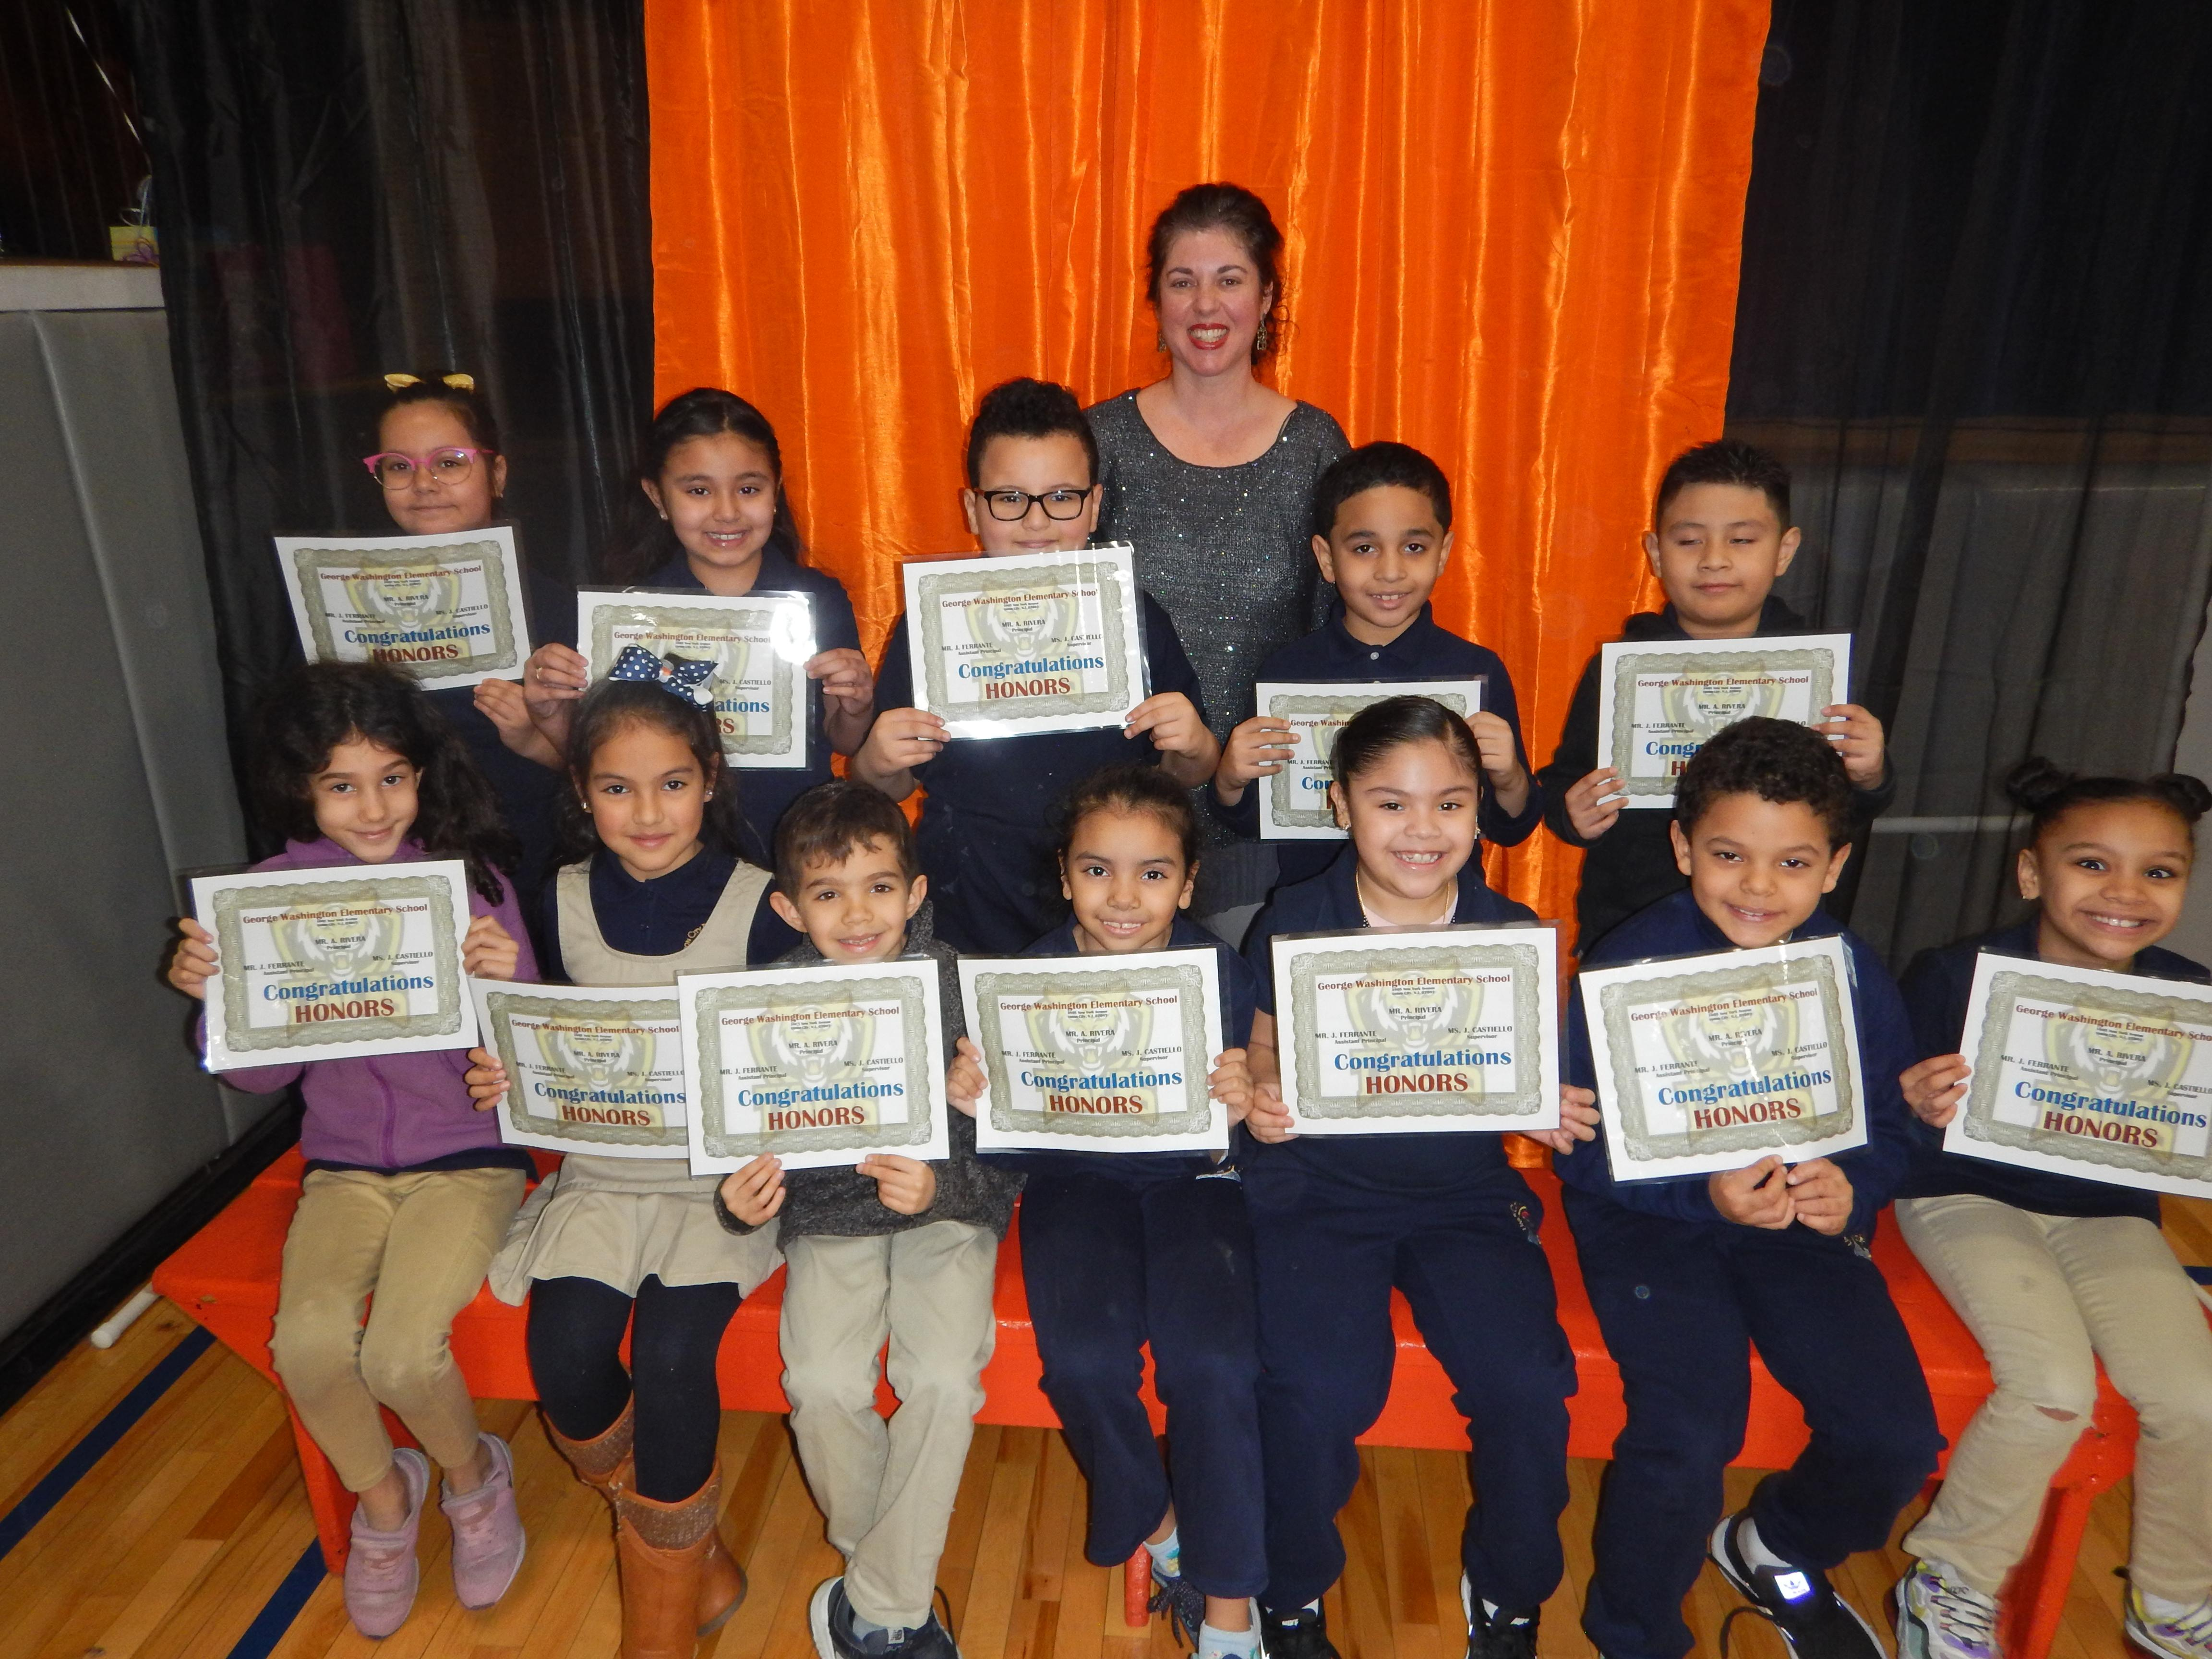 12 Honor Roll Students with their Teacher and certificates